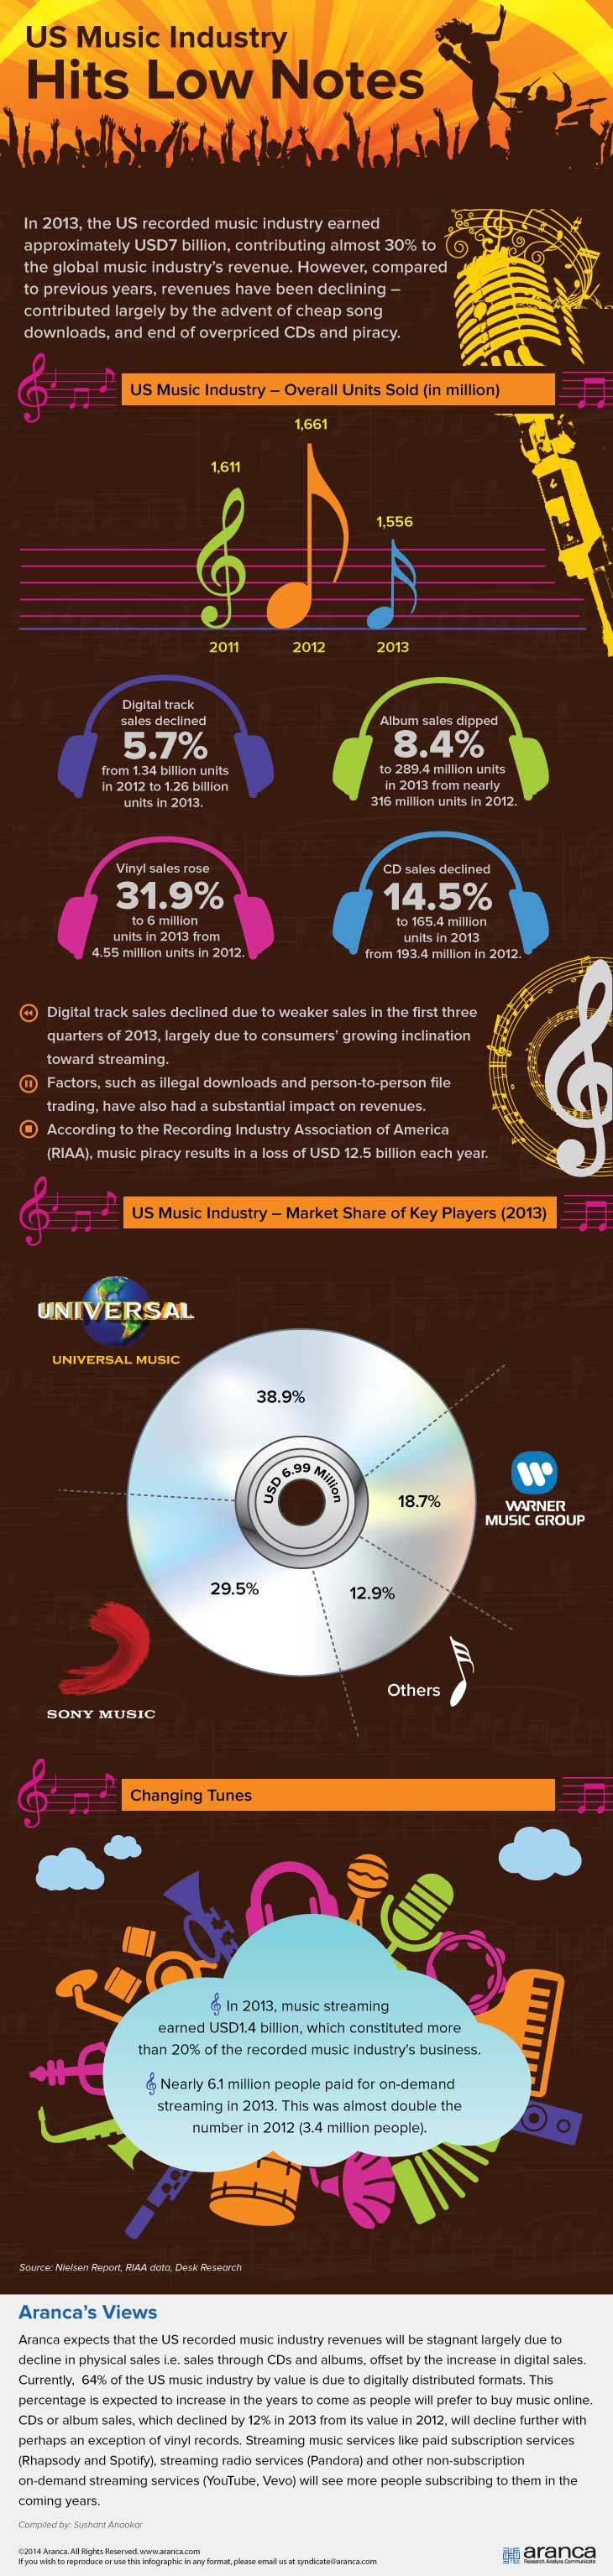 US Music Industry Analysis